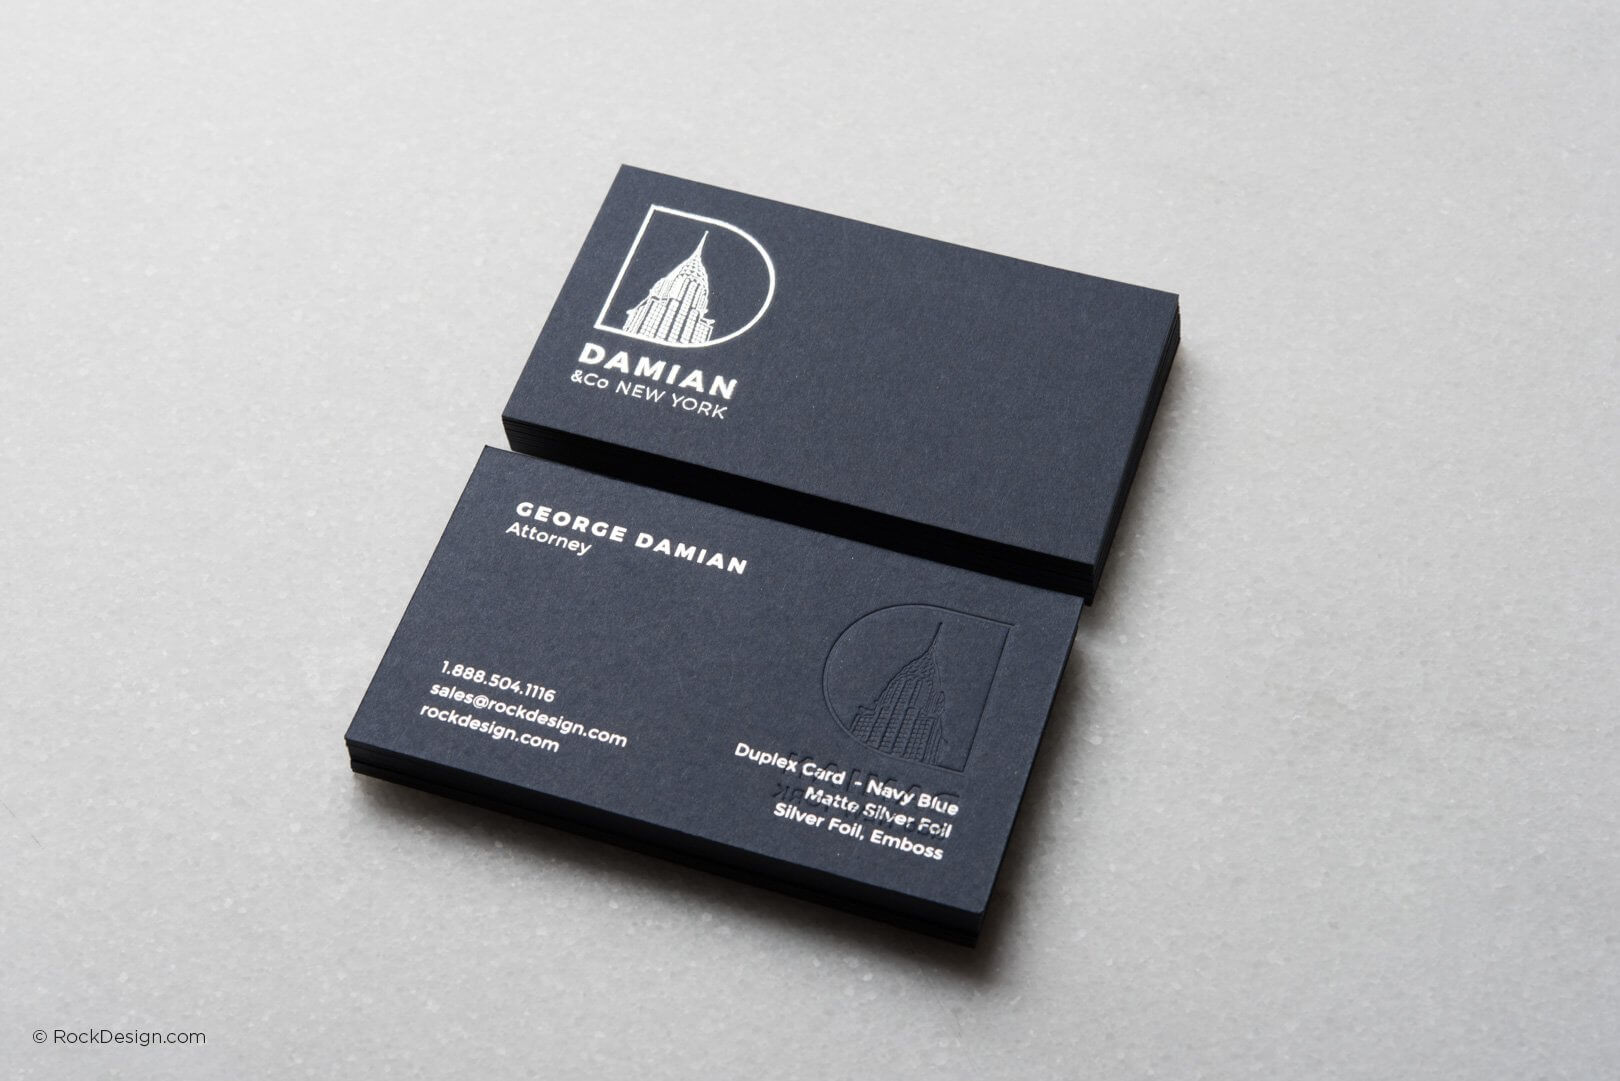 Print Online Embossed Logo Card Templates | Rockdesign throughout Buisness Card Template